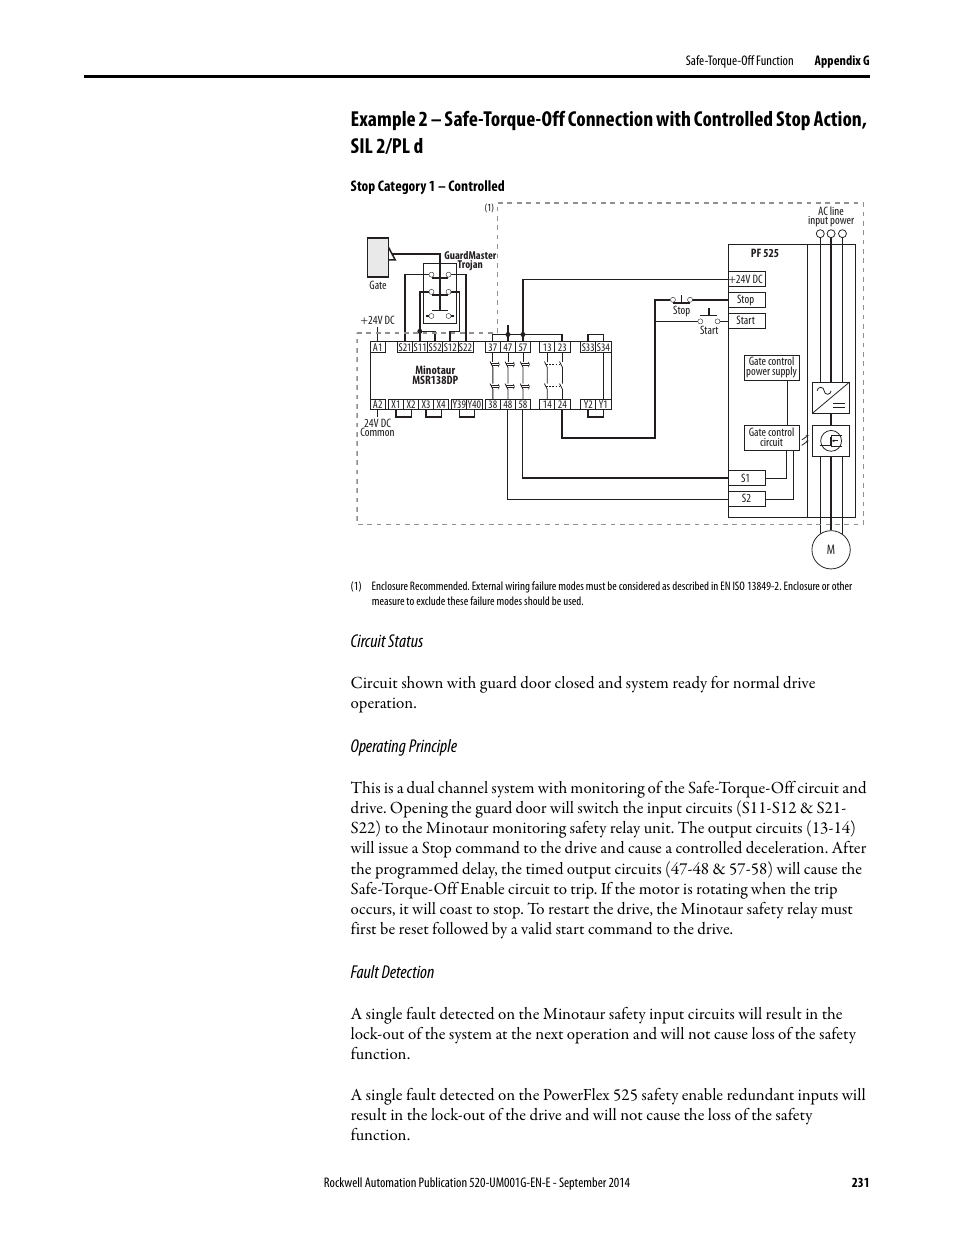 Pretty powerflex 70 manual gallery electrical and wiring diagram powerflex 70 wiring diagram powerflex 753 wiring diagram wiring swarovskicordoba Image collections